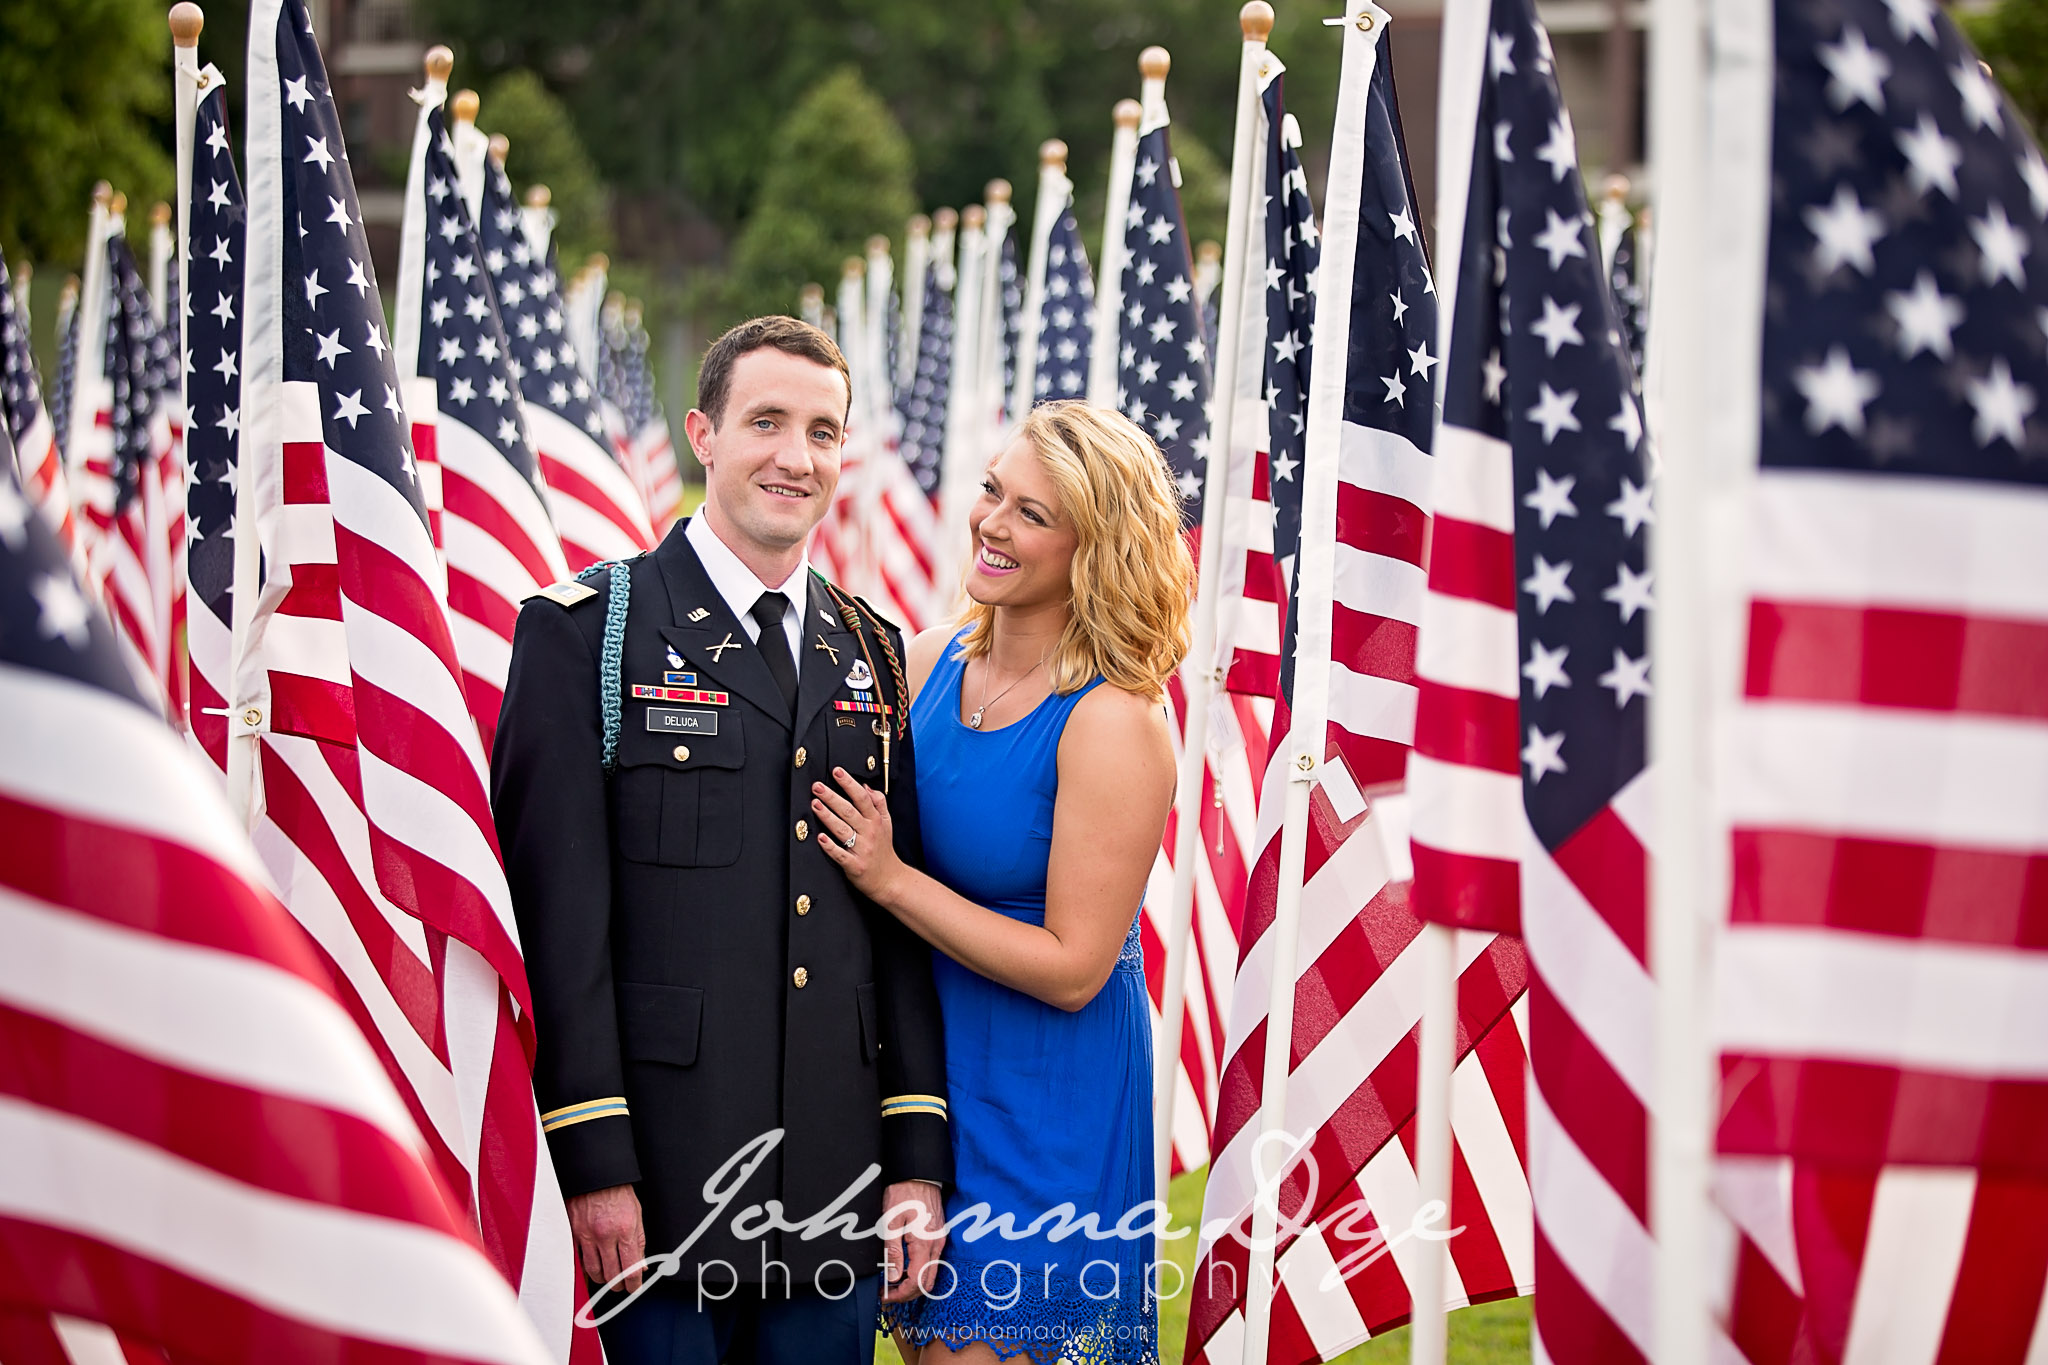 Engagement Photographer in Fayetteville, North Carolina